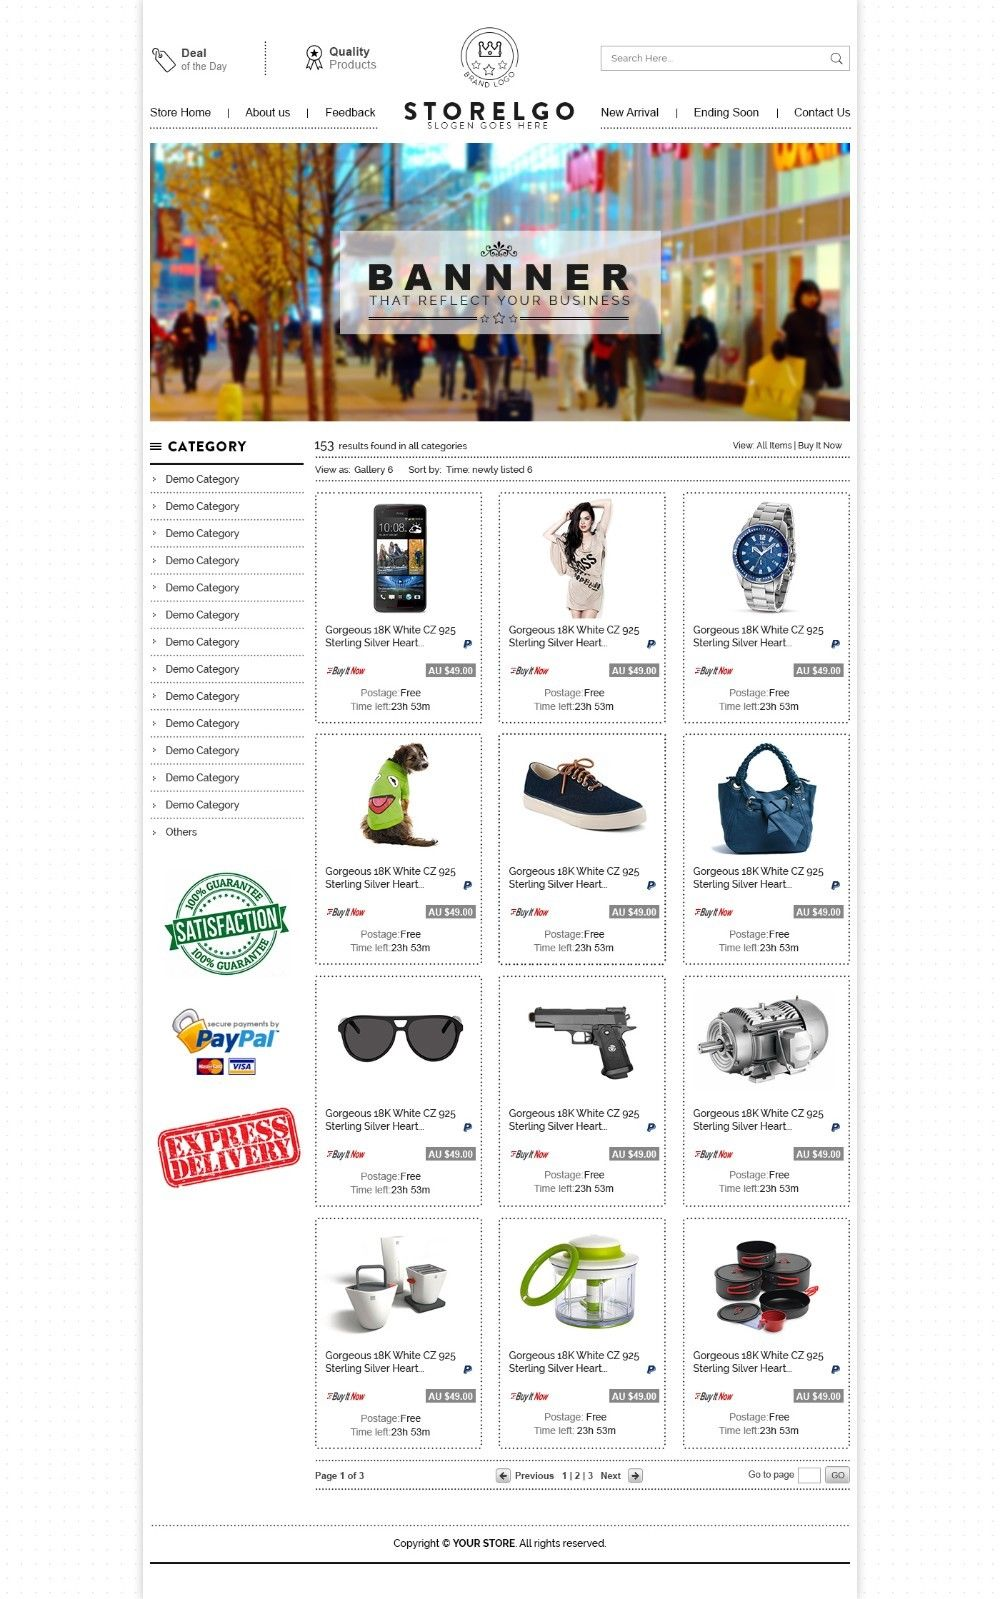 Fine ebay storefront templates free pictures inspiration example resume ideas alingaricom for Ebay listing templates free